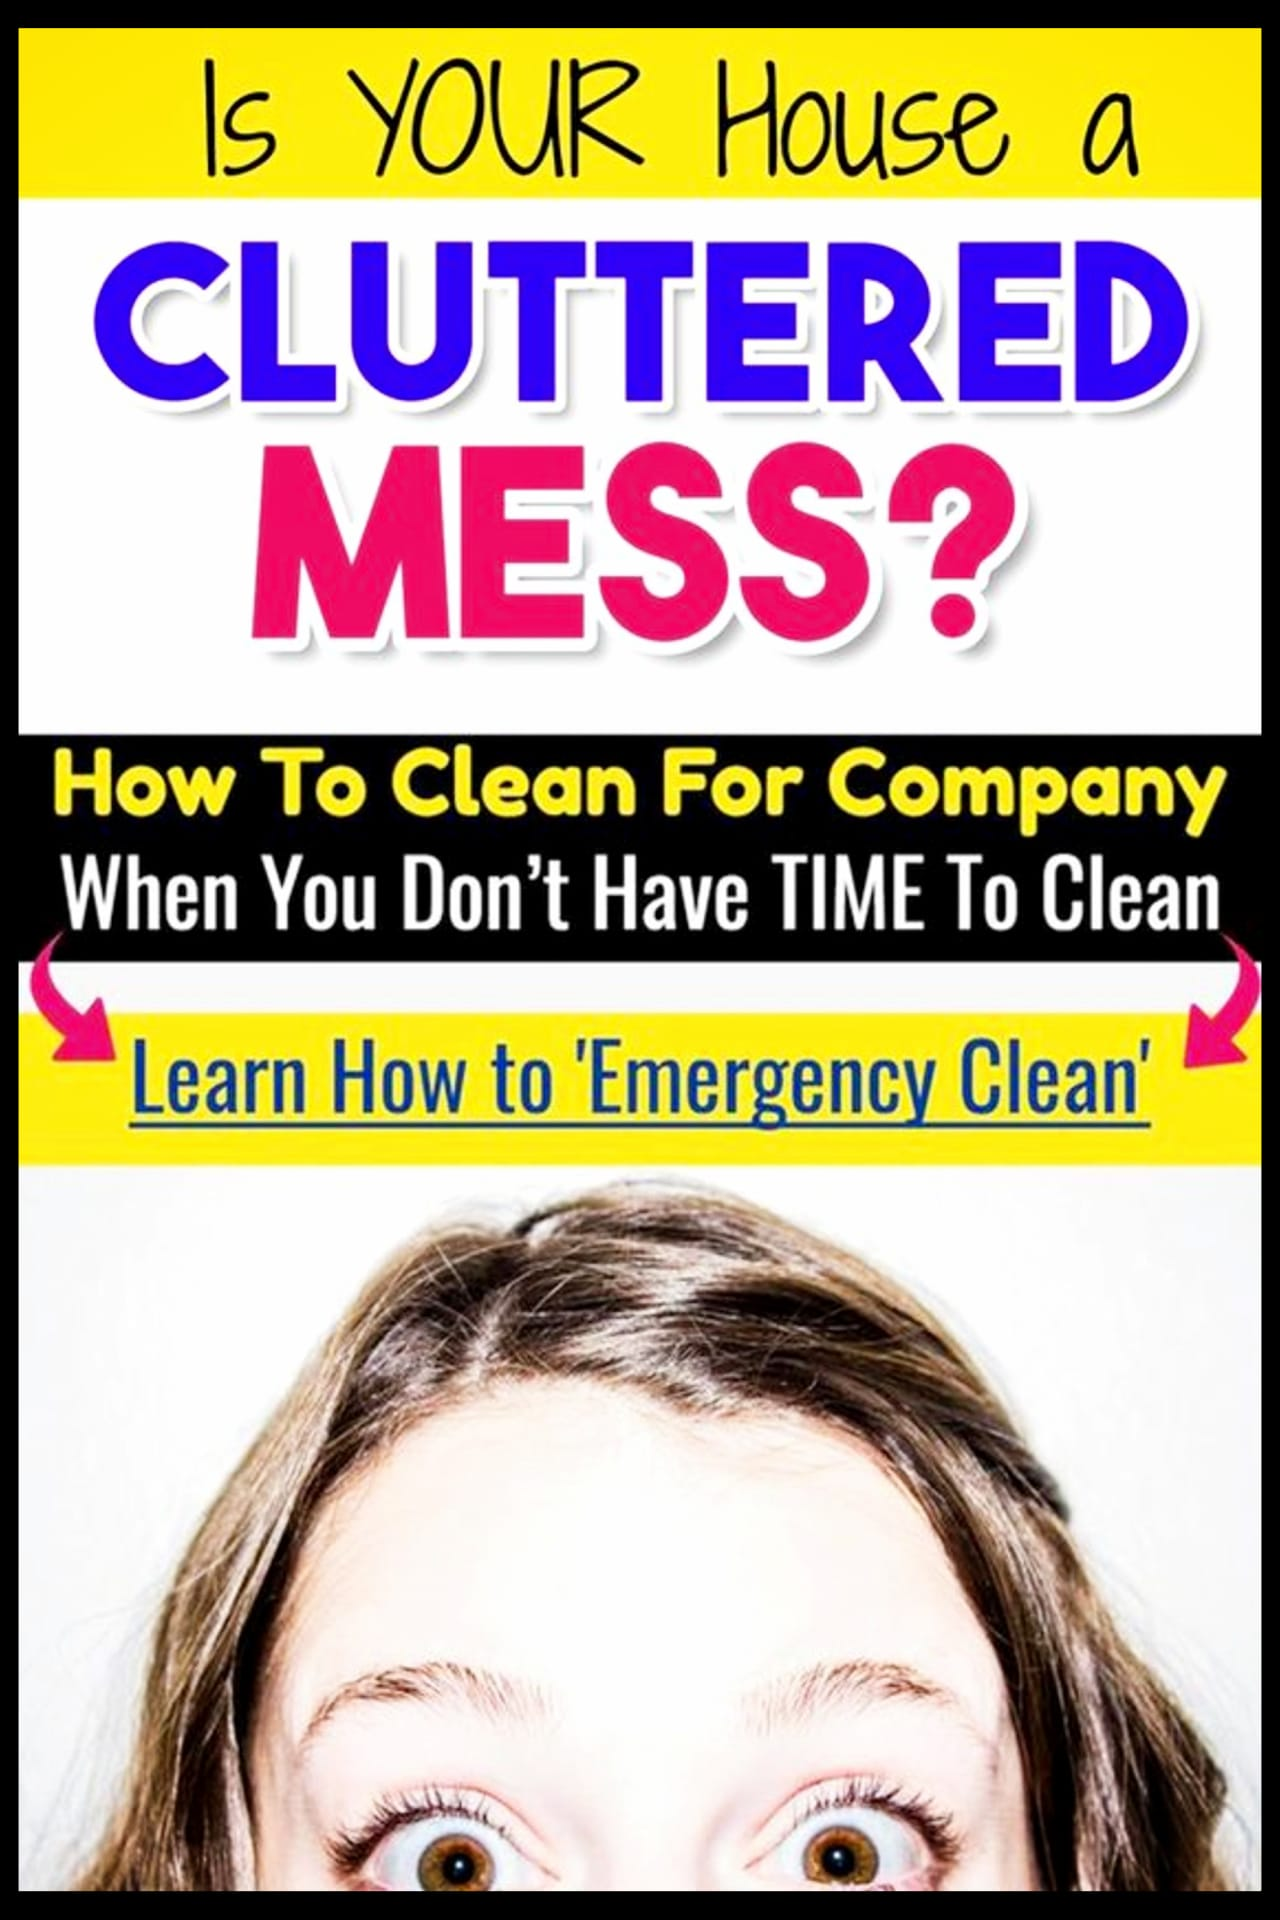 cleaning checklist for company - these speed cleaning tips are an easy checklist to clean for guests